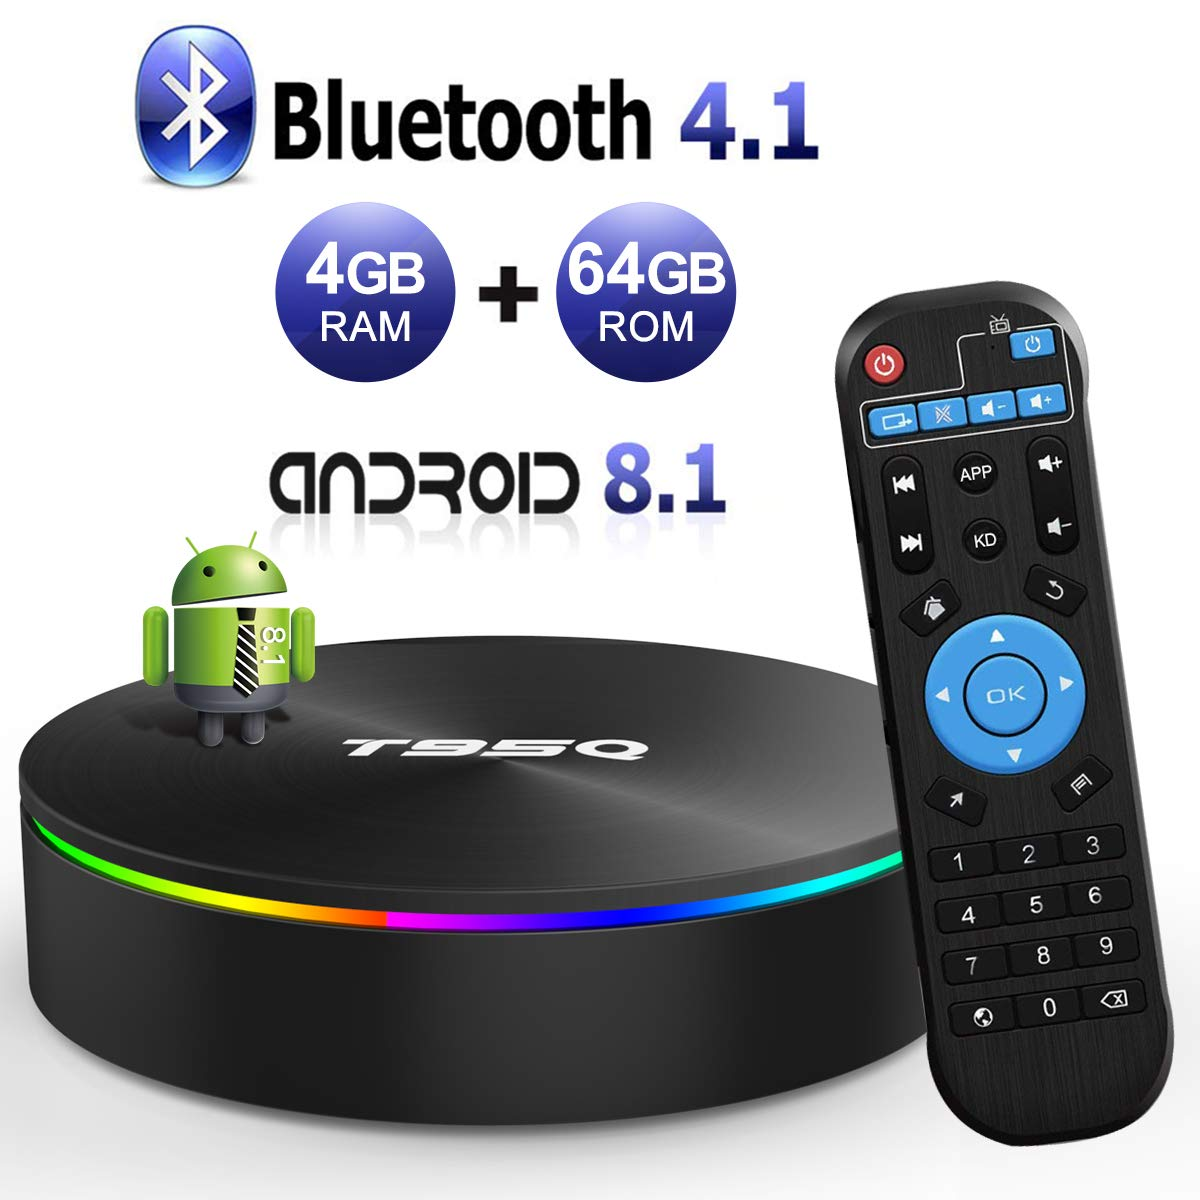 YAGALA T95Q Android 8.1 TV Box 4GB RAM 64GB ROM Amlogic S905X2 Quad-core Cortex-A53 Bluetooth 4.1 HDMI 2.1 H.265 4K Resolution 2.4GHz&5GHz Dual Band WiFi 1000M Ethernet Video Player by YAGALA